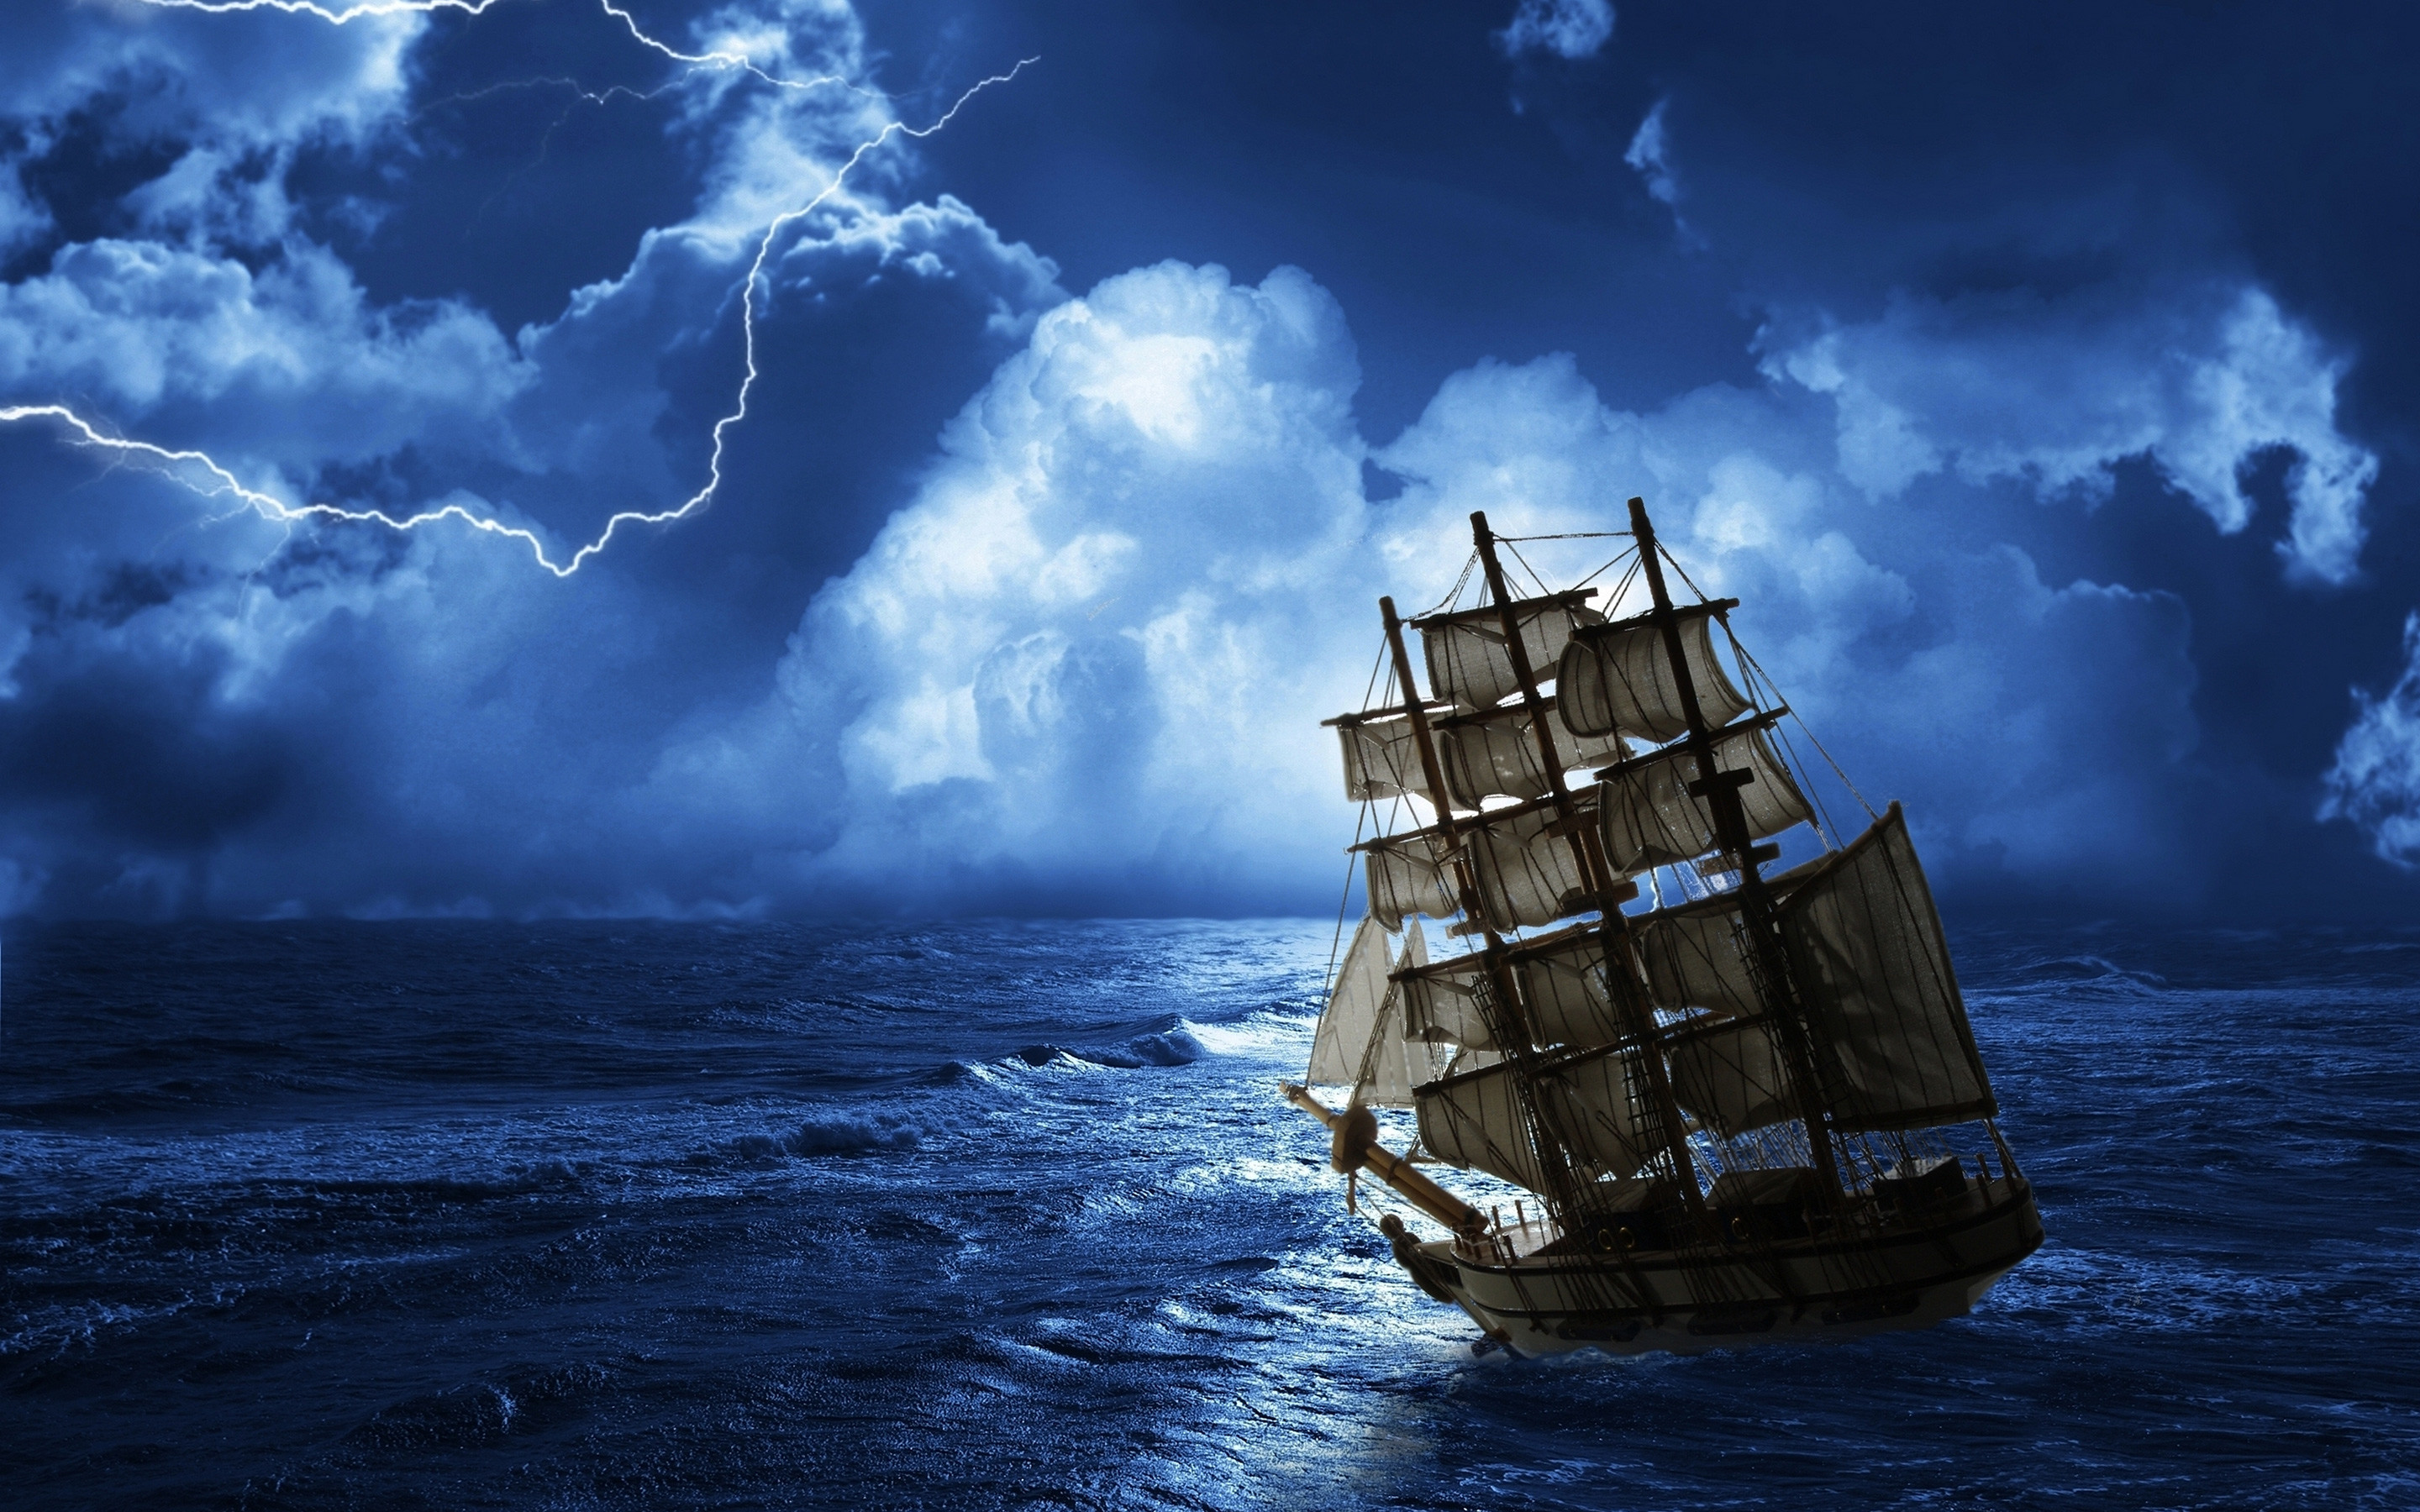 Related Wallpapers from Cute Wallpaper. Ghost ship row sea